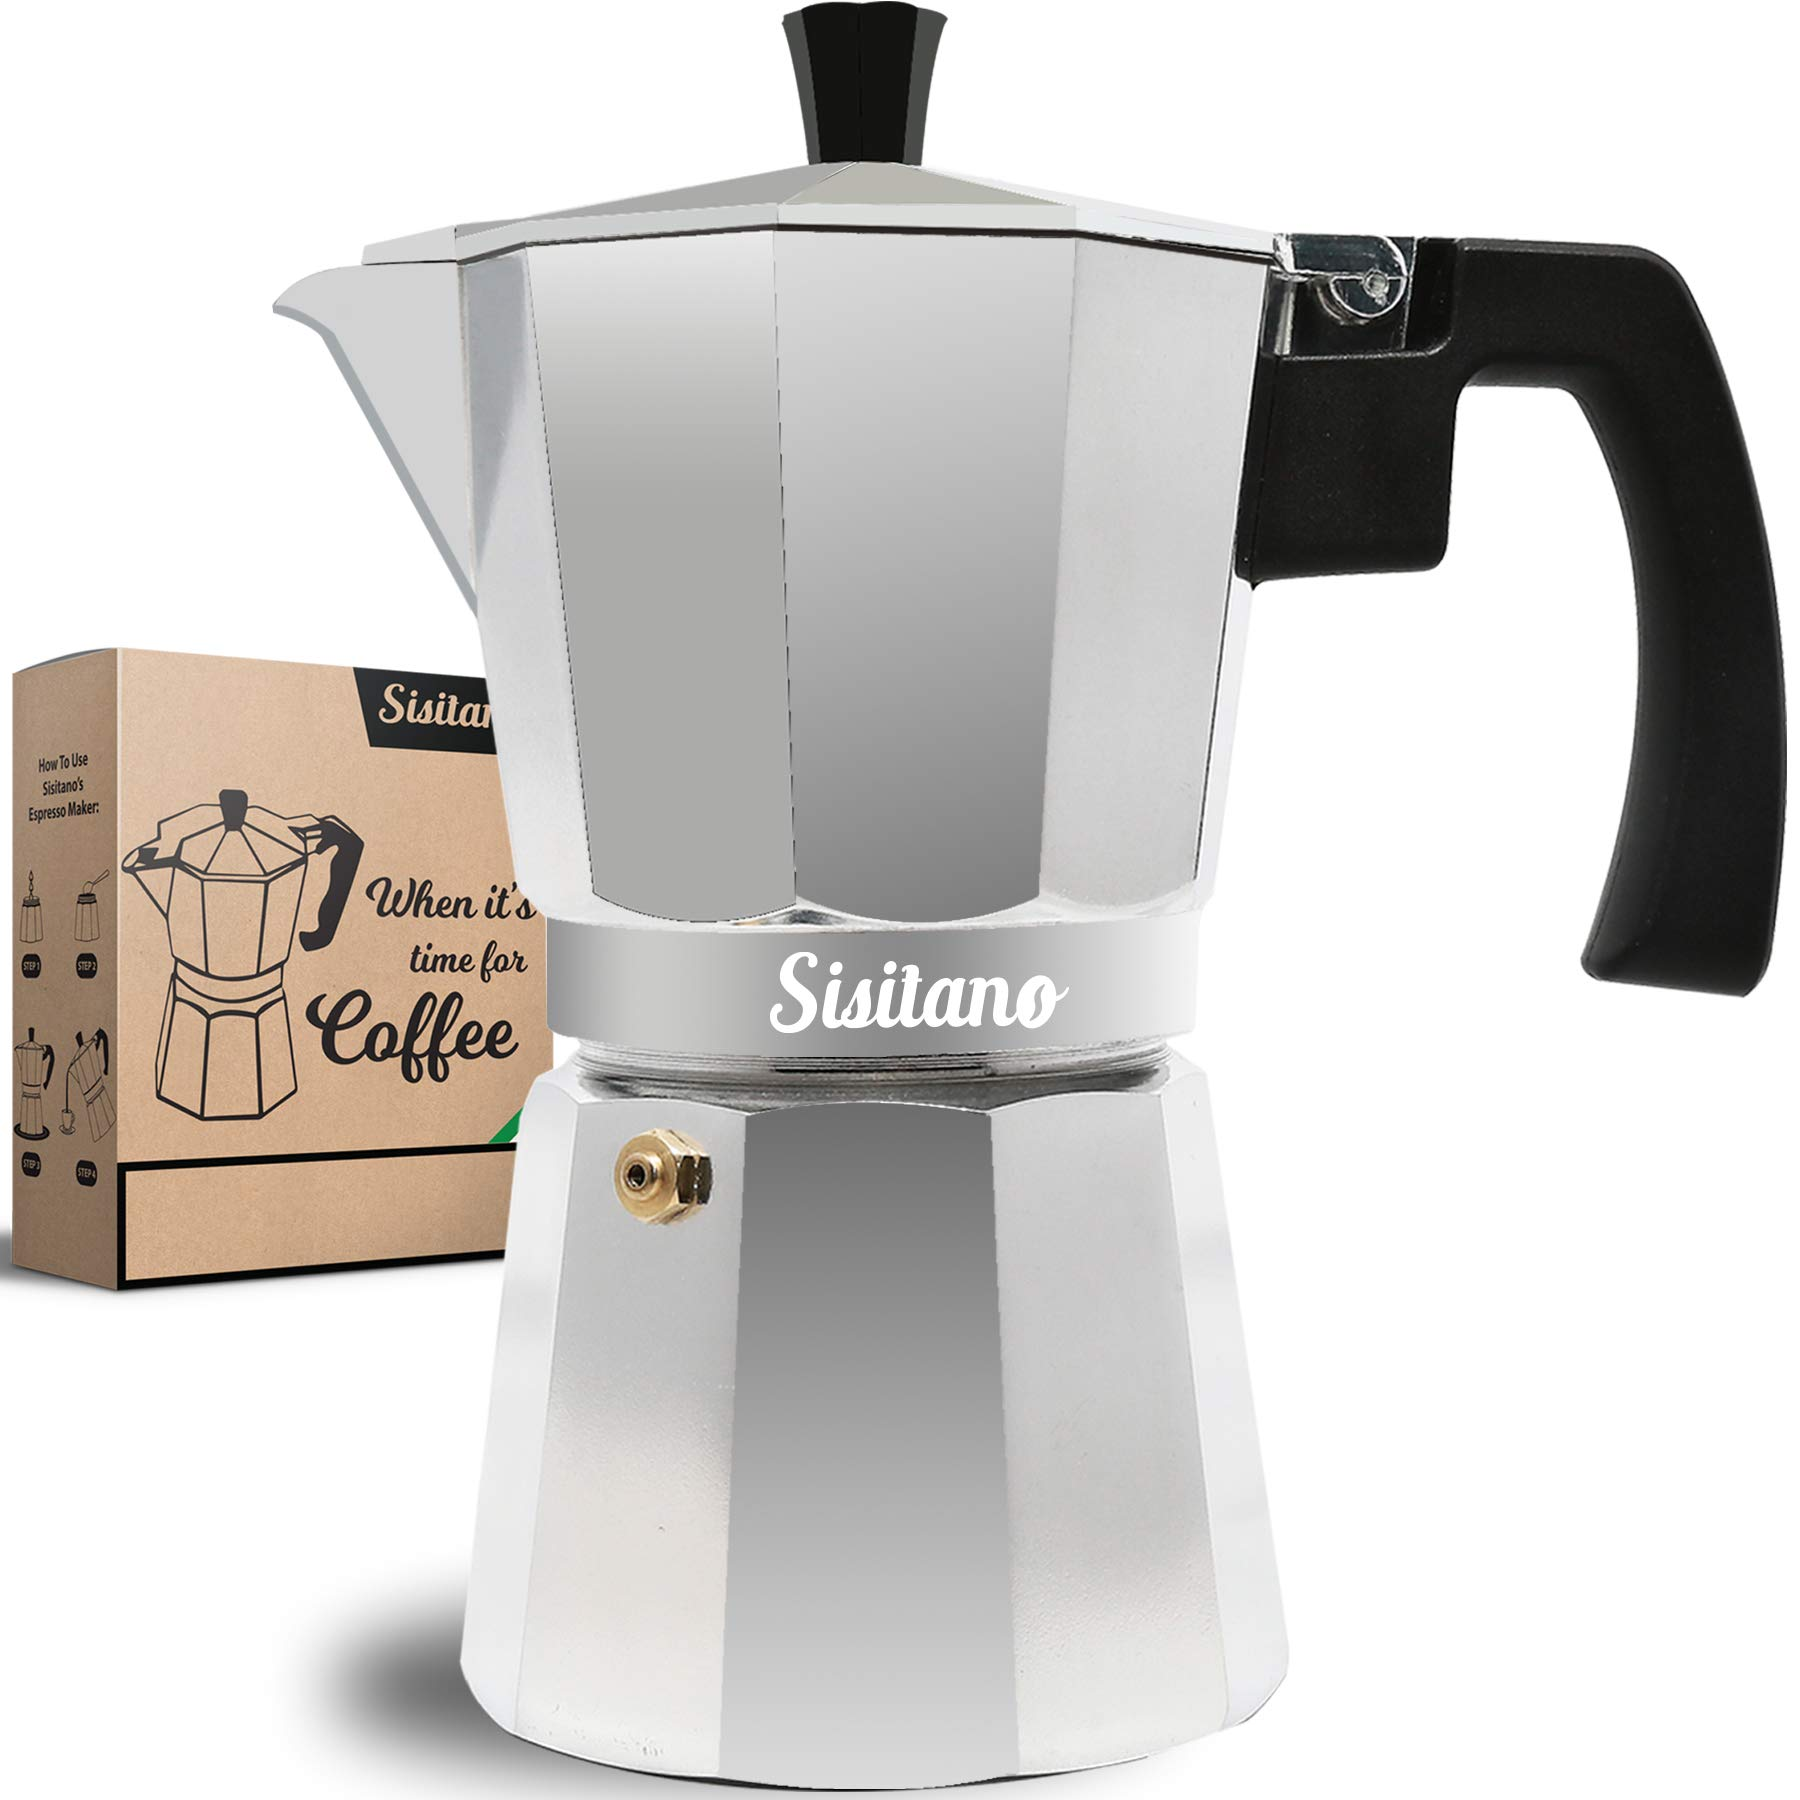 Moka Pot 6 Cup Sisitano Coffee Maker Stove Top Moka Express With Latte Art Set For Making Delicious Italian Espresso Free Coffee Accessories